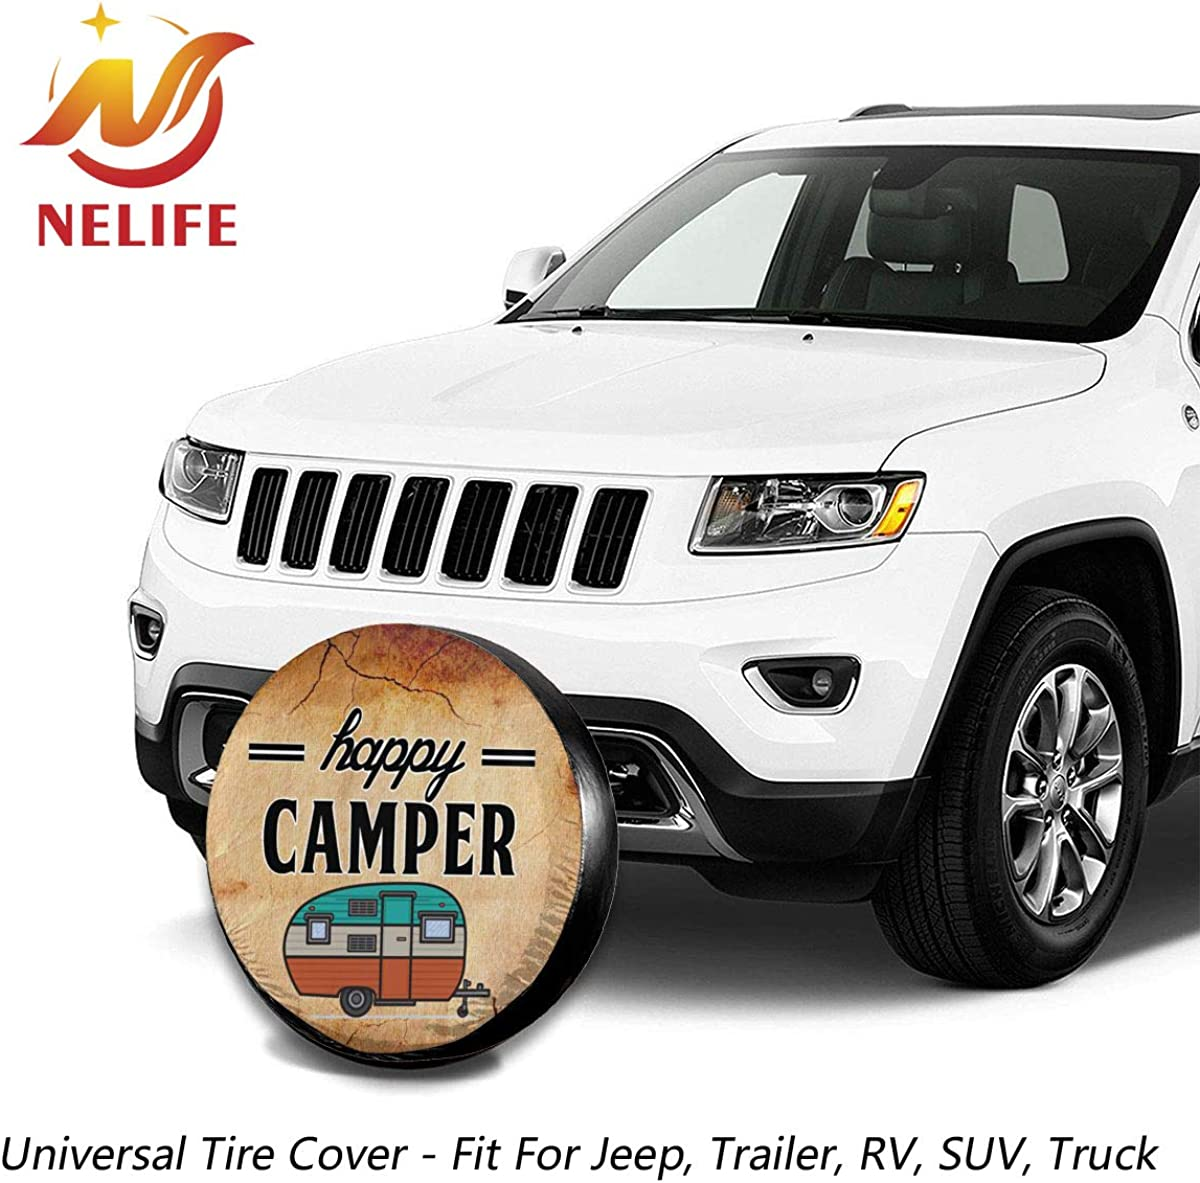 NELife Tire Cover Happy Camper Camping Polyester Wheel Tire Cover Potable Universal Wheel Covers Powerful Waterproof Tire Cover Fit for Jeep Trailer RV SUV Truck Trailer Accessories 14-17 in